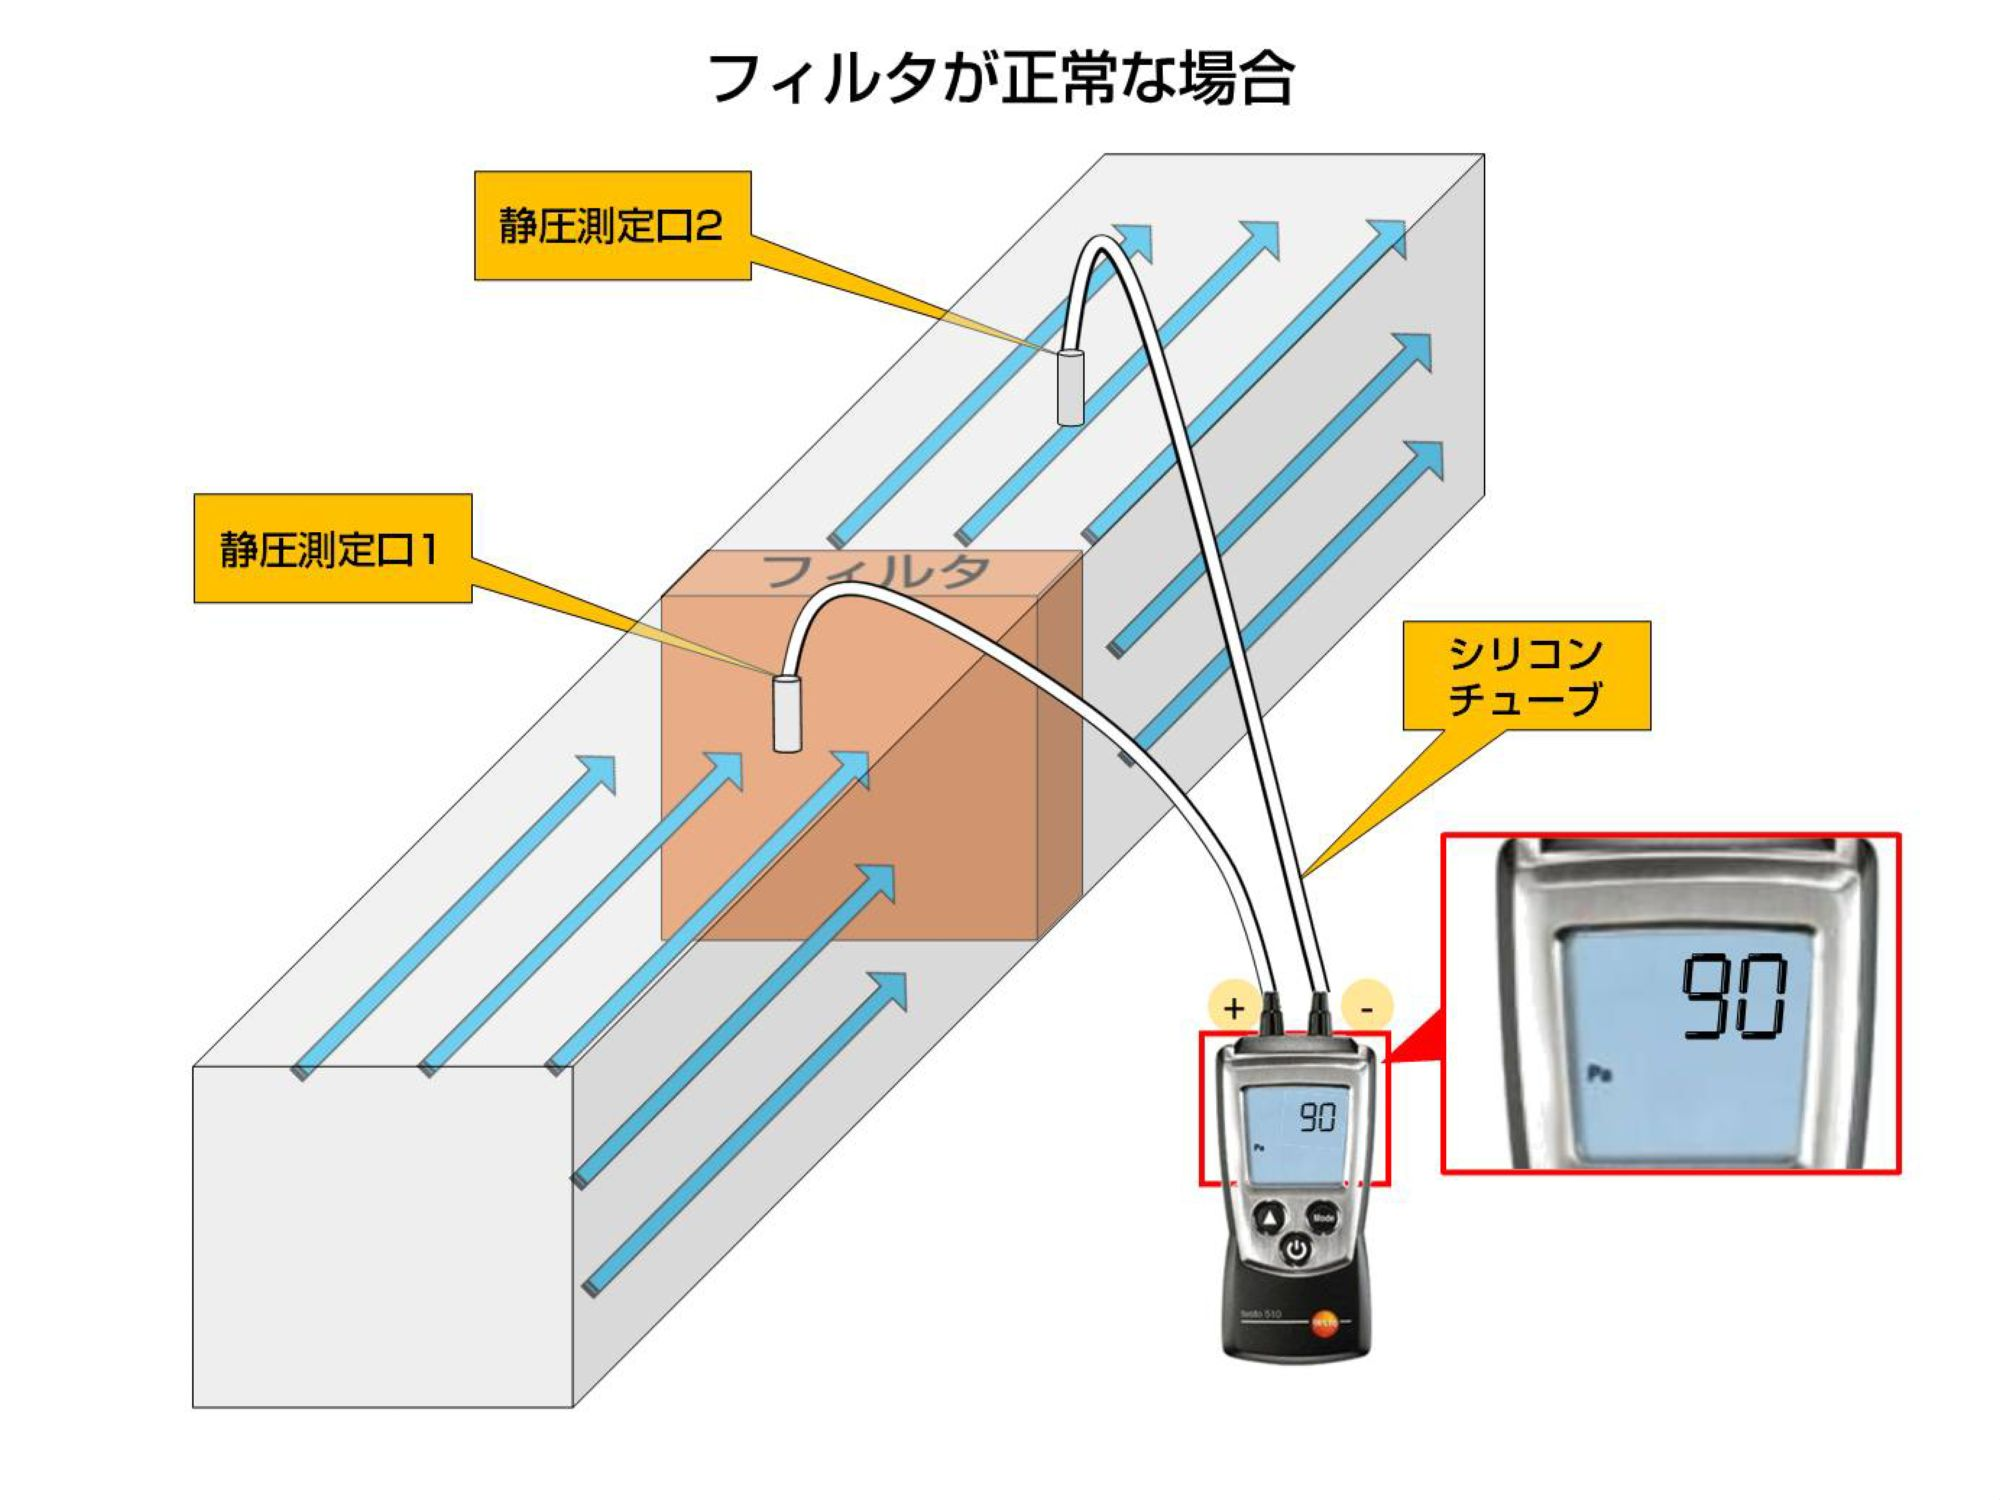 jp_differential_pressure_FAQ_5 (2).png